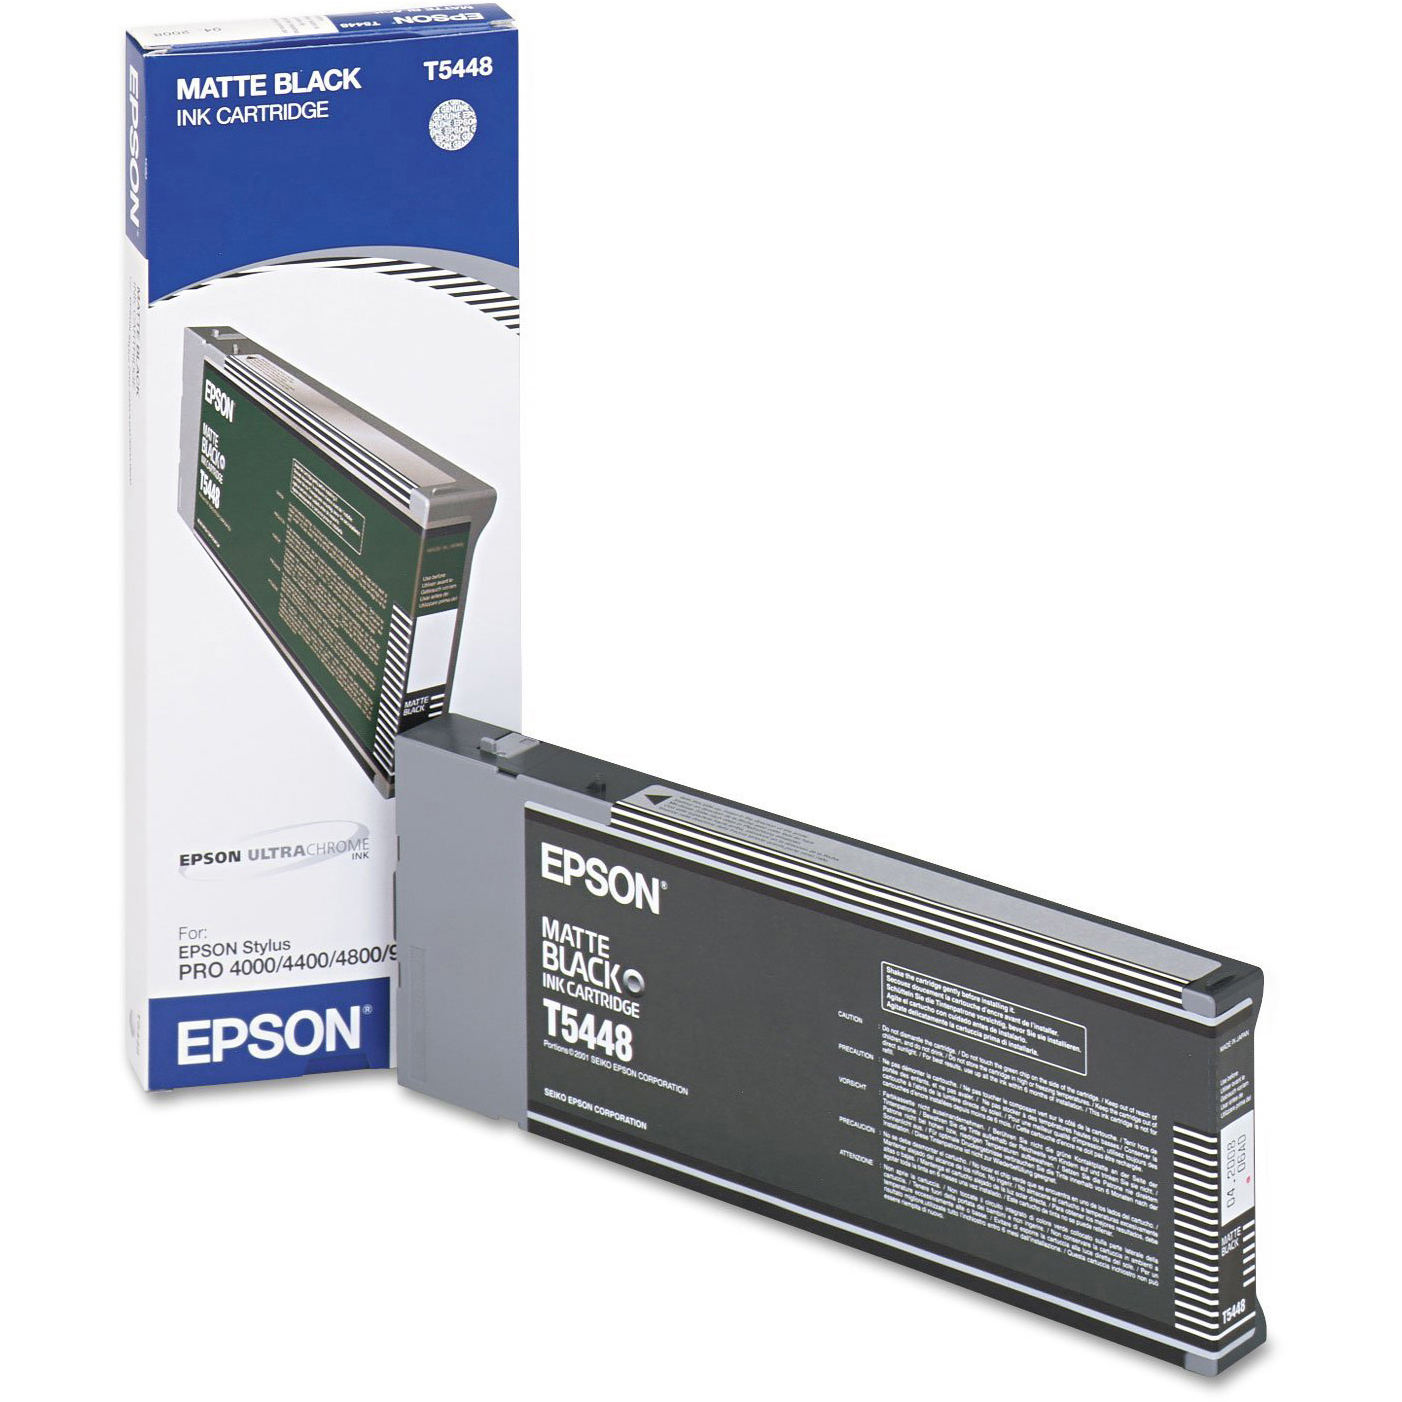 Printer Cartridge for Epson Artison, Epson Workforce, Epson ink and any other Superb Customer Support · Fast Shipping · In Business Since  · 1 Yr Money Back GuaranteeTypes: Printer Ink Cartridges, Remanufactured Inkjets, Compatible Ink and Toner.